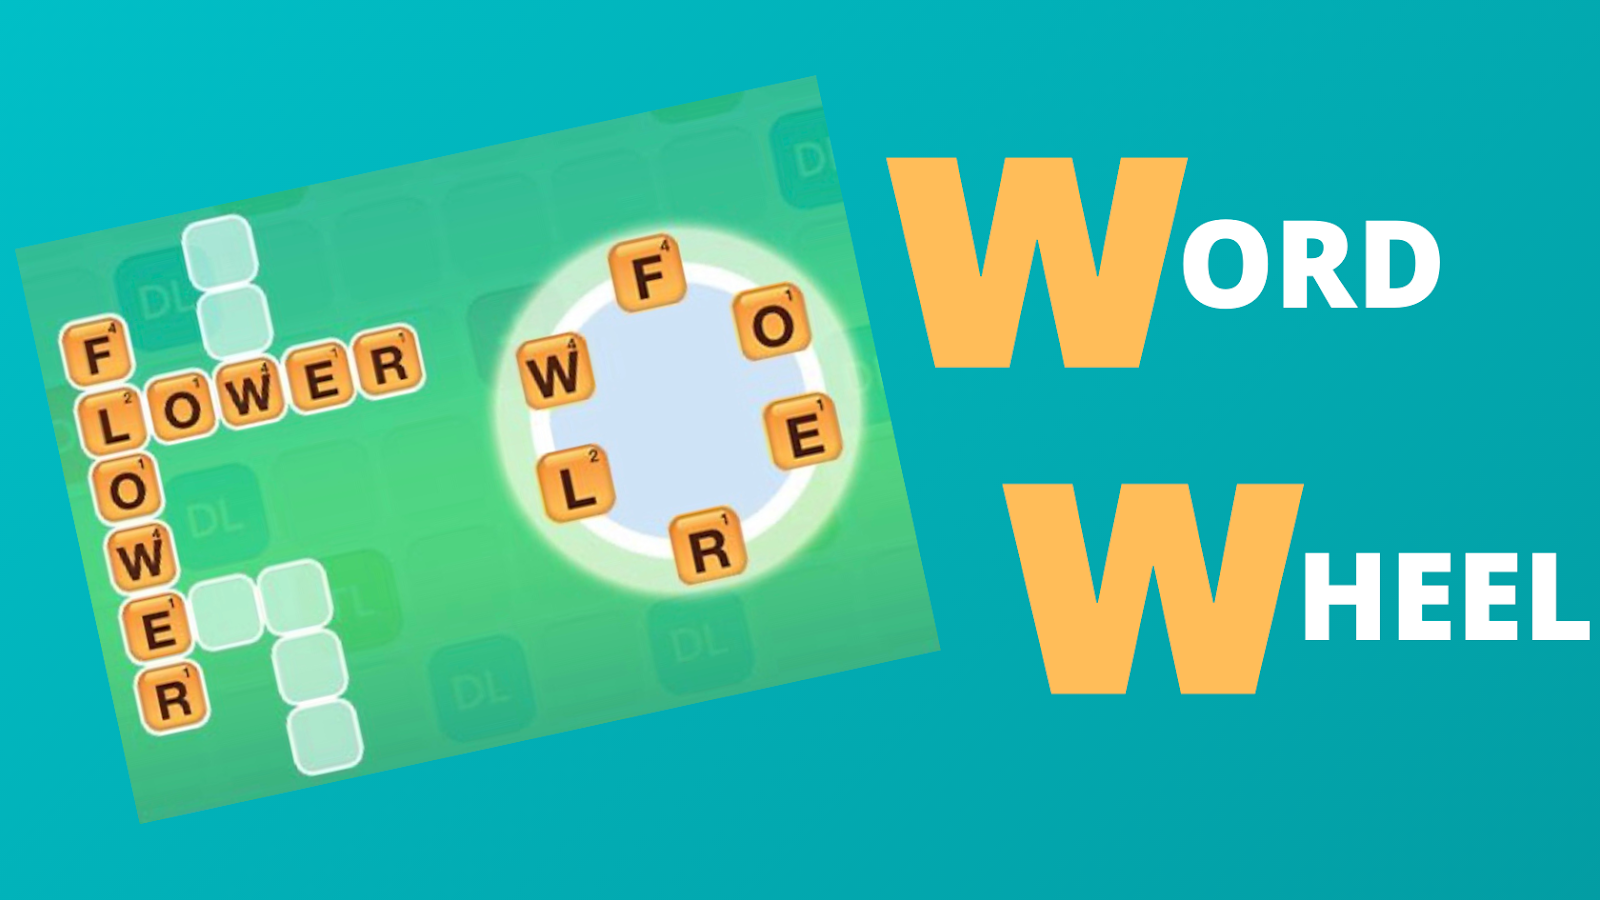 "Text: Word Wheel. Picture of gameboard with words ""flower"" and ""lower"" on the board along with a few blank spaces for other words. Picture of word wheel with letters ""F"", ""O"", ""E"", ""R"", ""L"", ""W"" placed in a circle on the wheel."